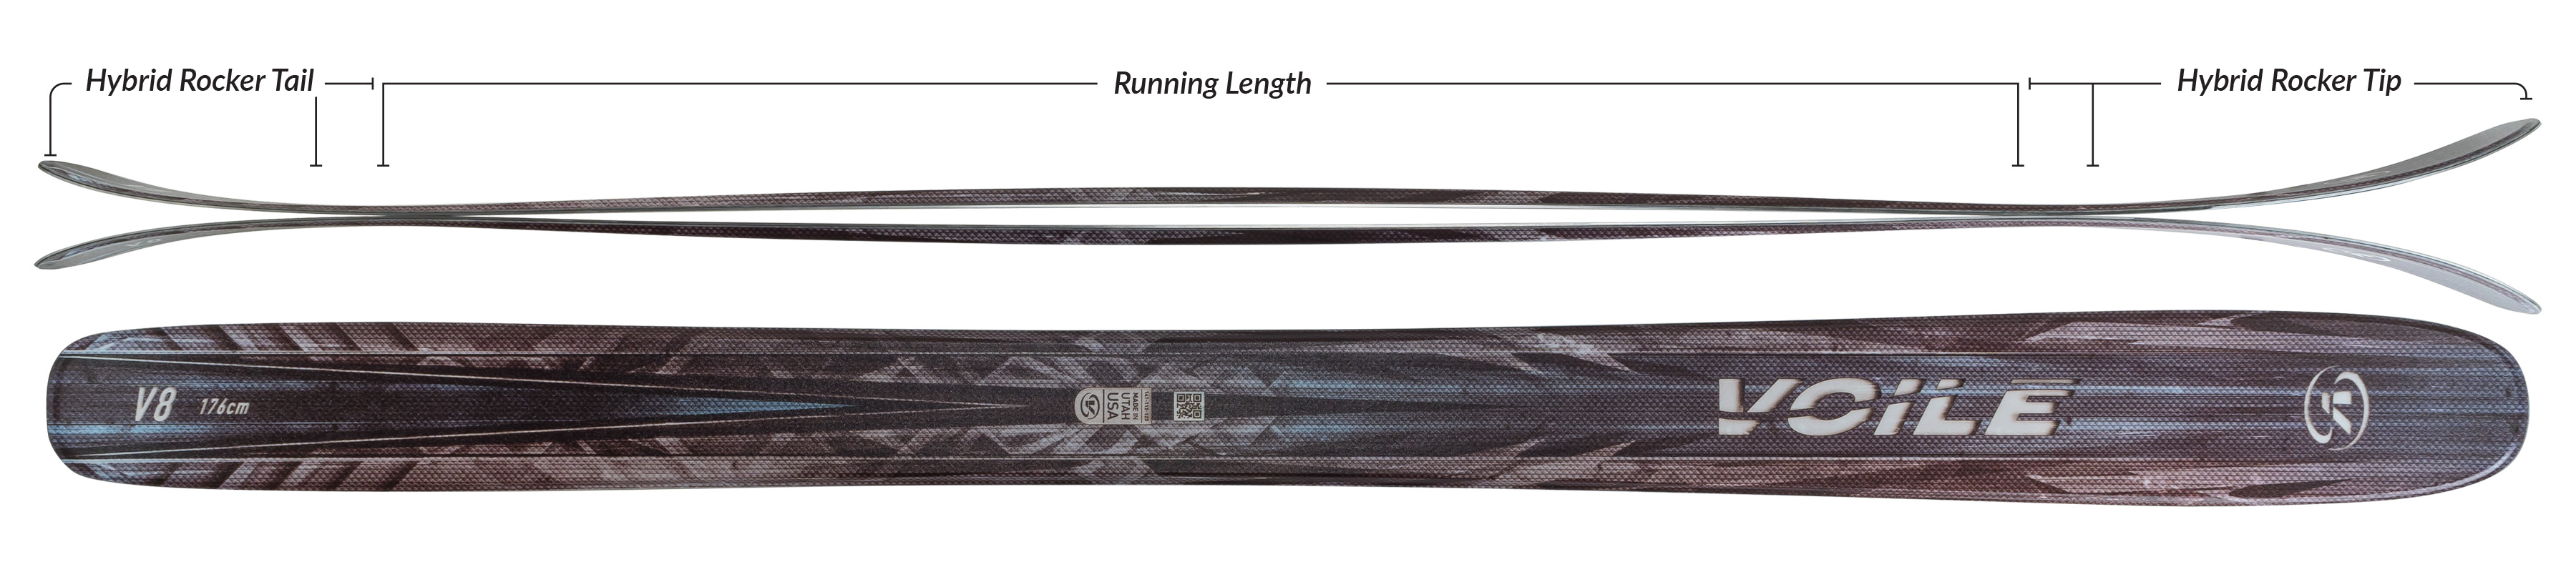 Voile V8 Skis Camber Profile